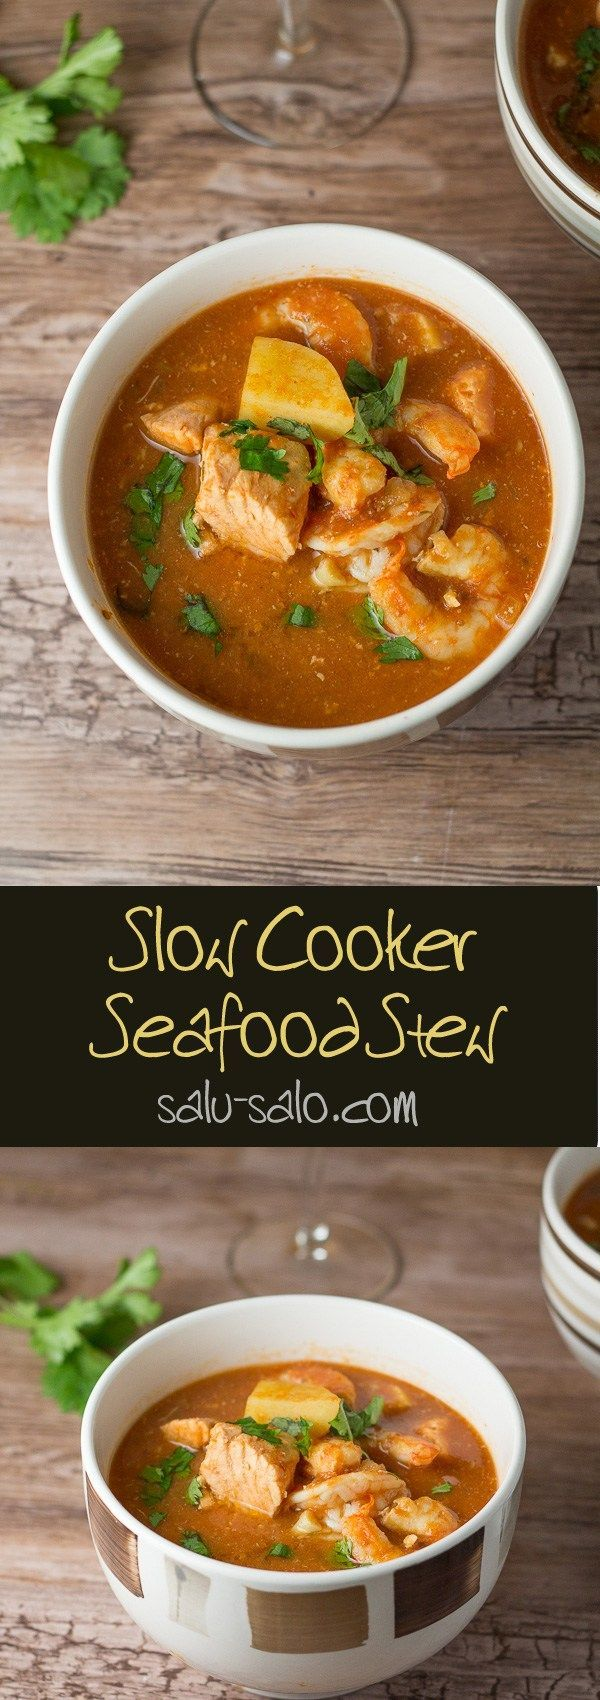 Slow Cooker Seafood Stew - Salu Salo Recipes